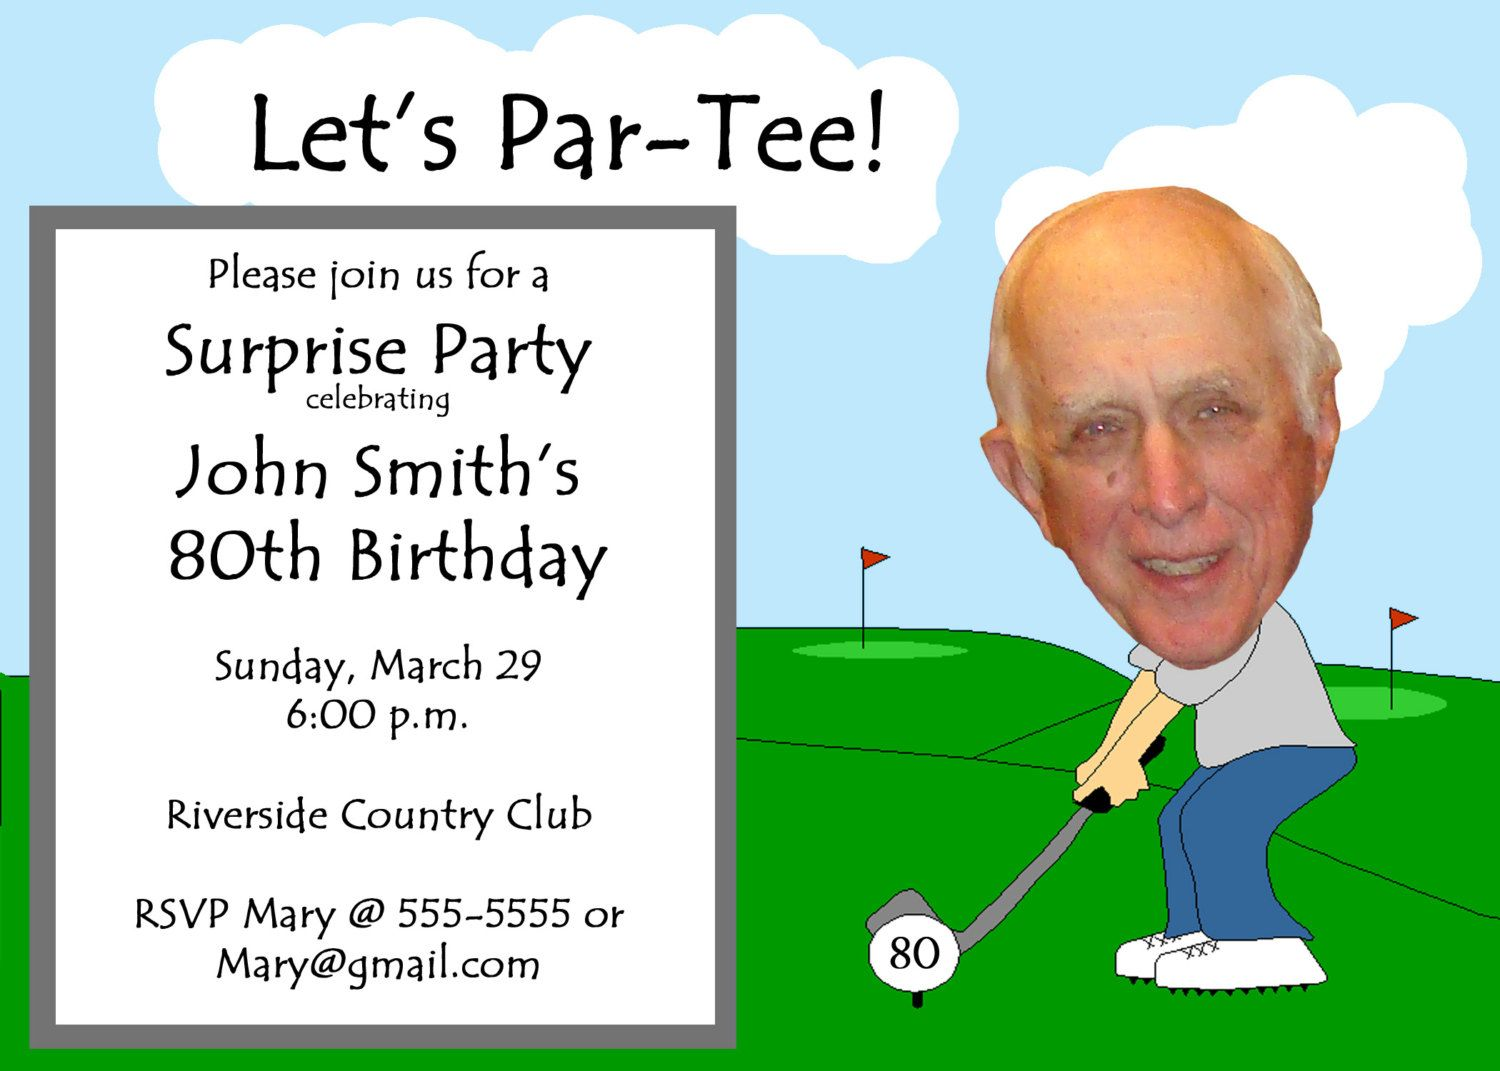 Golf Themed Funny Unique Retirement Invitation by PictureYourself – Party Invitation Funny